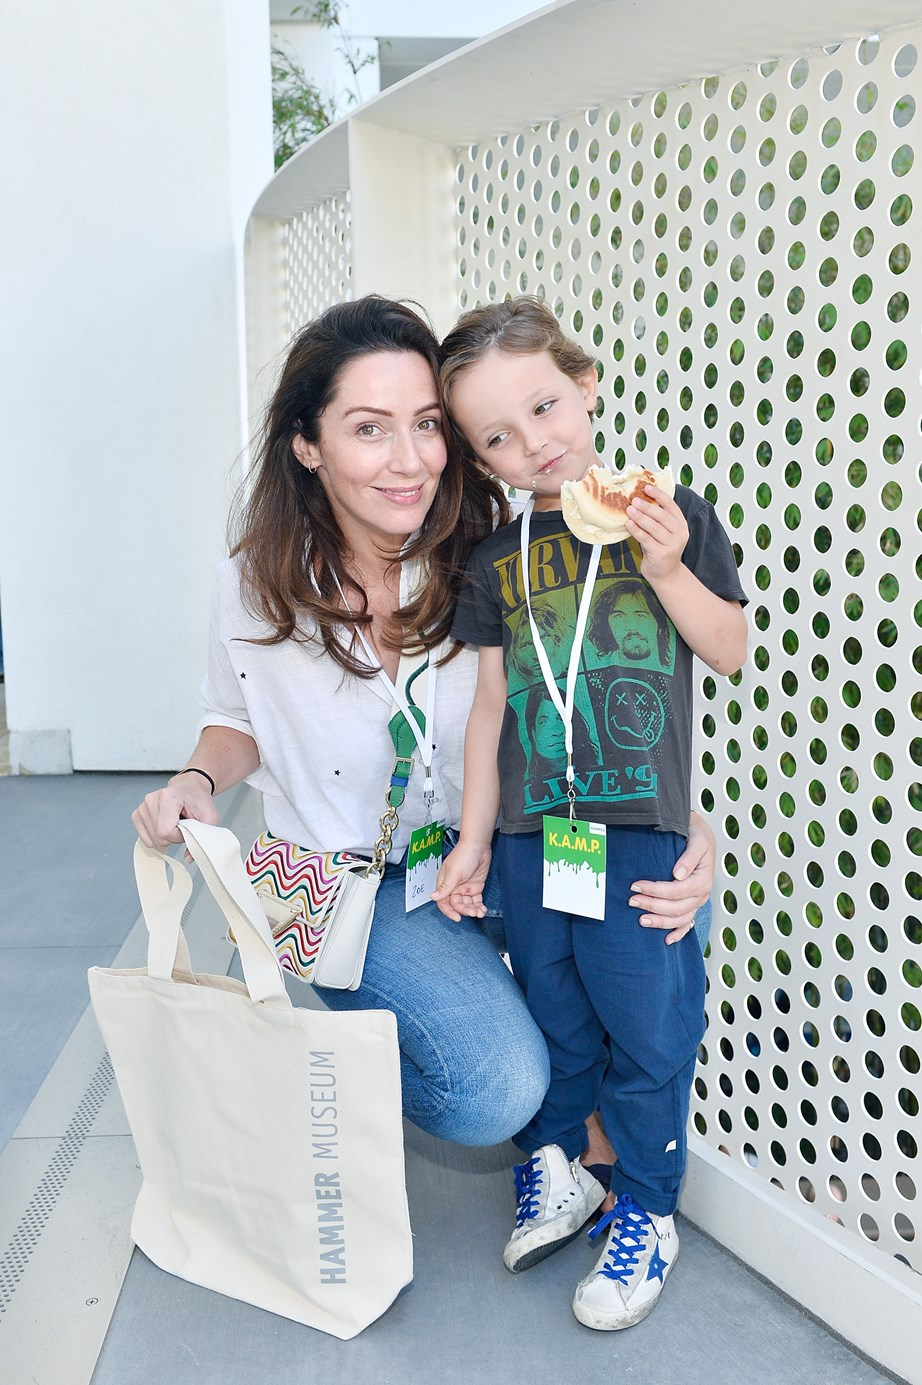 Six year old Louis de Givenchy has parents in high places, his dad is a French senior banker at JP Morgan, and his mum is from Australia!